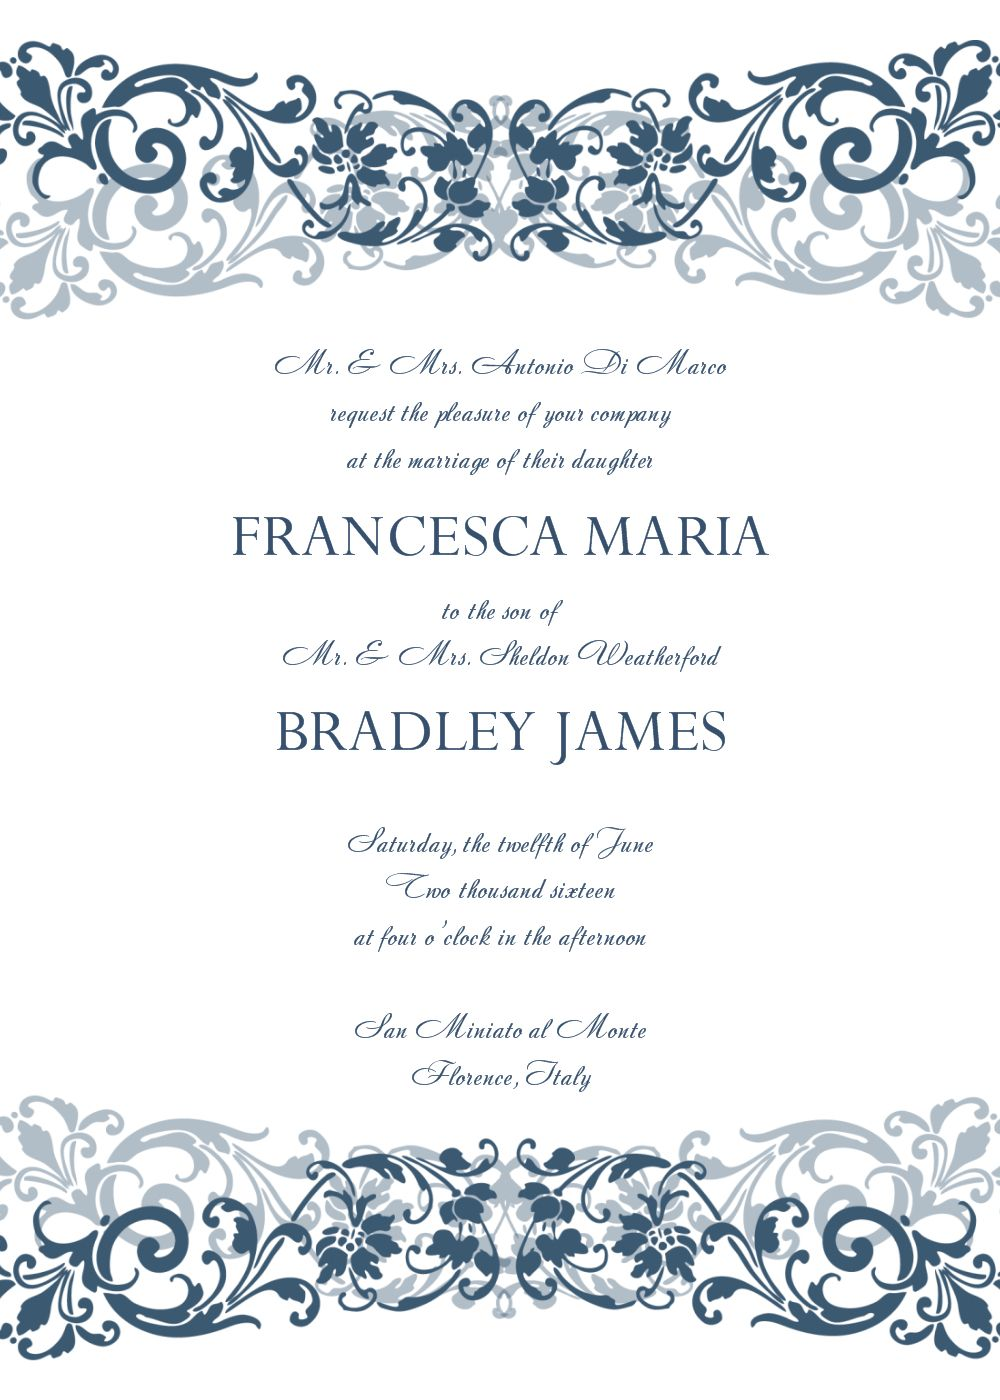 Invitation Template Word Inspiration Coolnew The Wedding Invitation Templates Word Templates Check More .